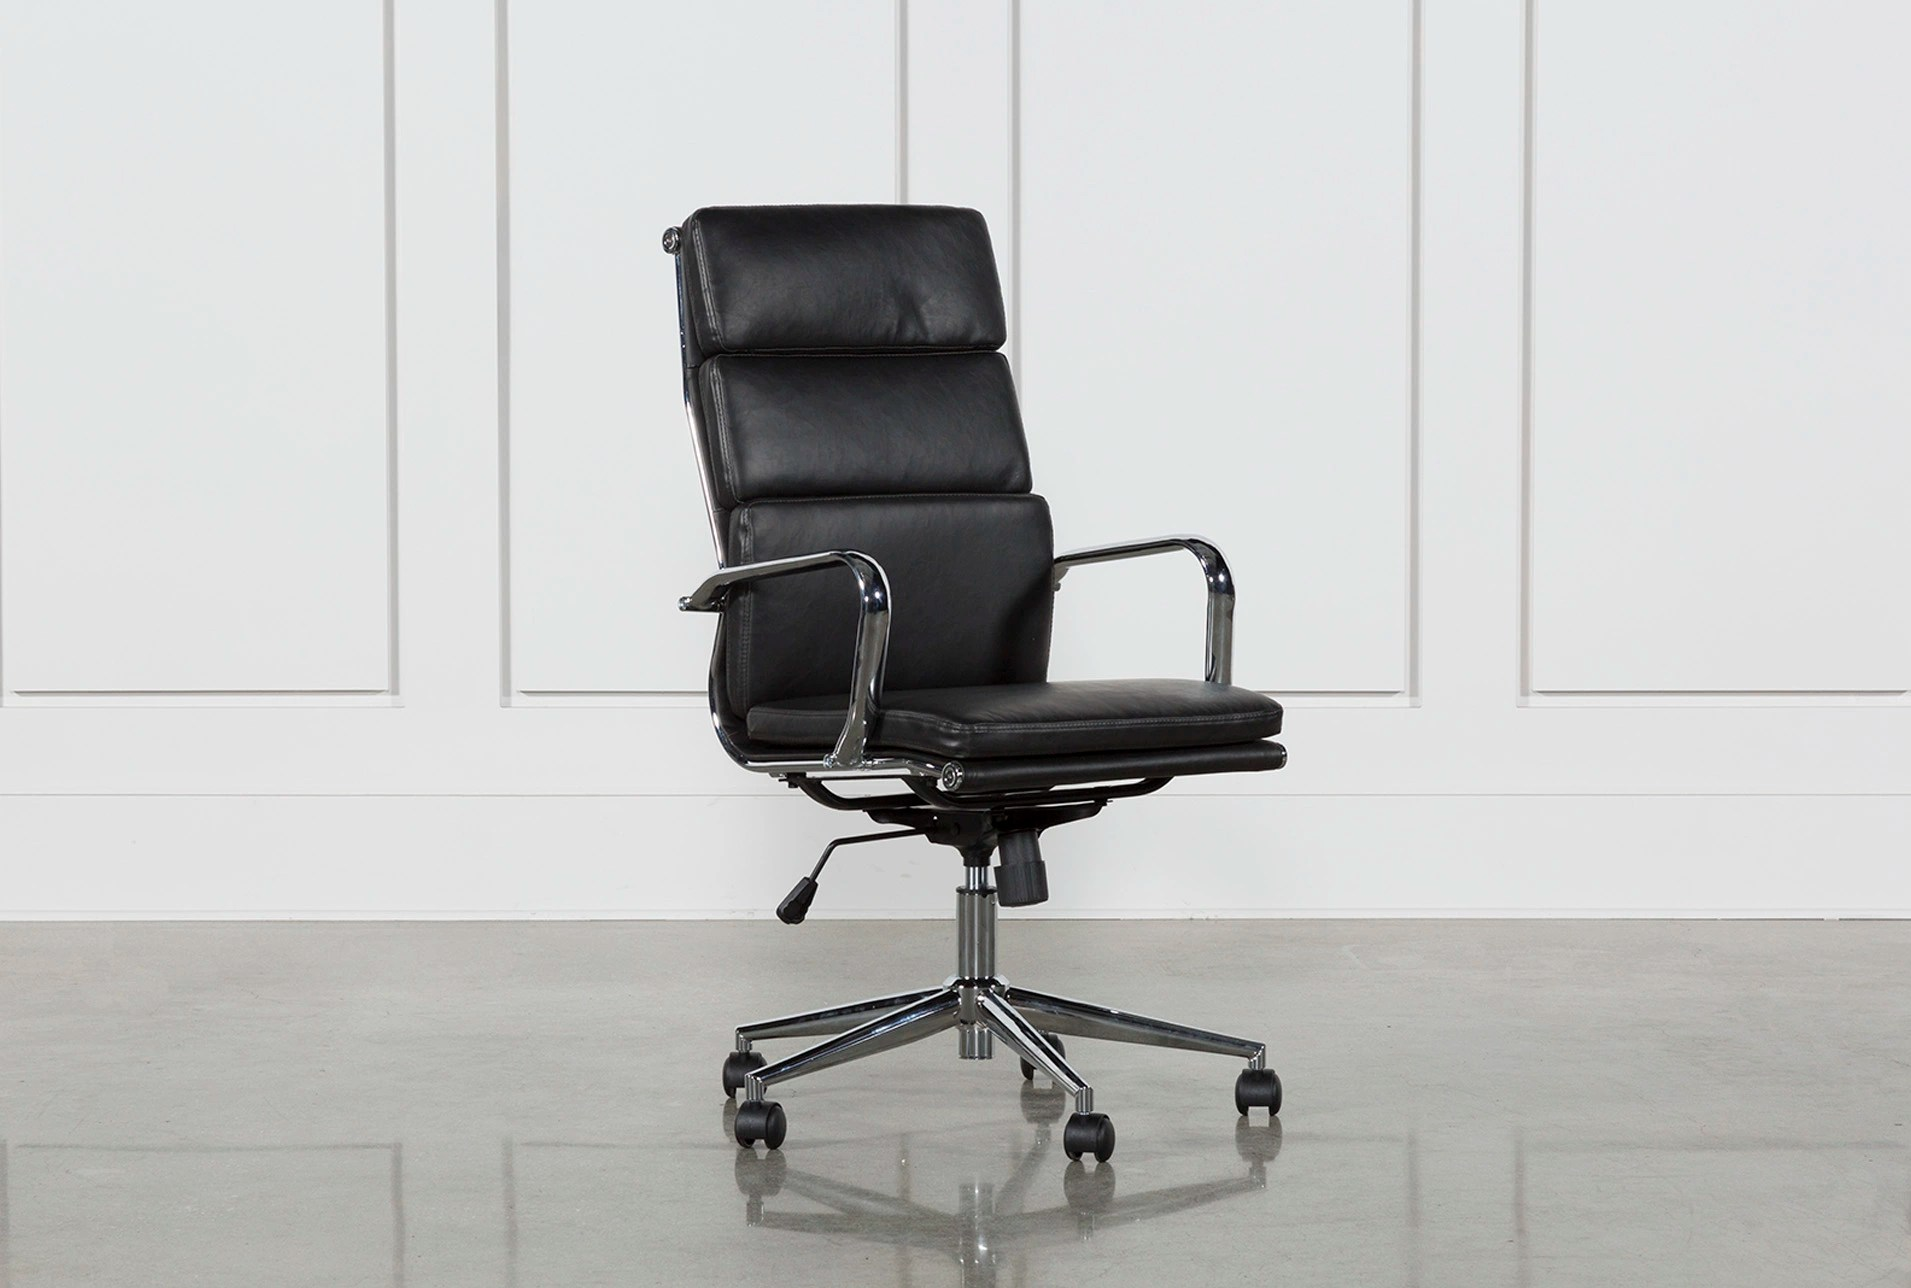 office chair high back air bag argos moby black living spaces qty 1 has been successfully added to your cart